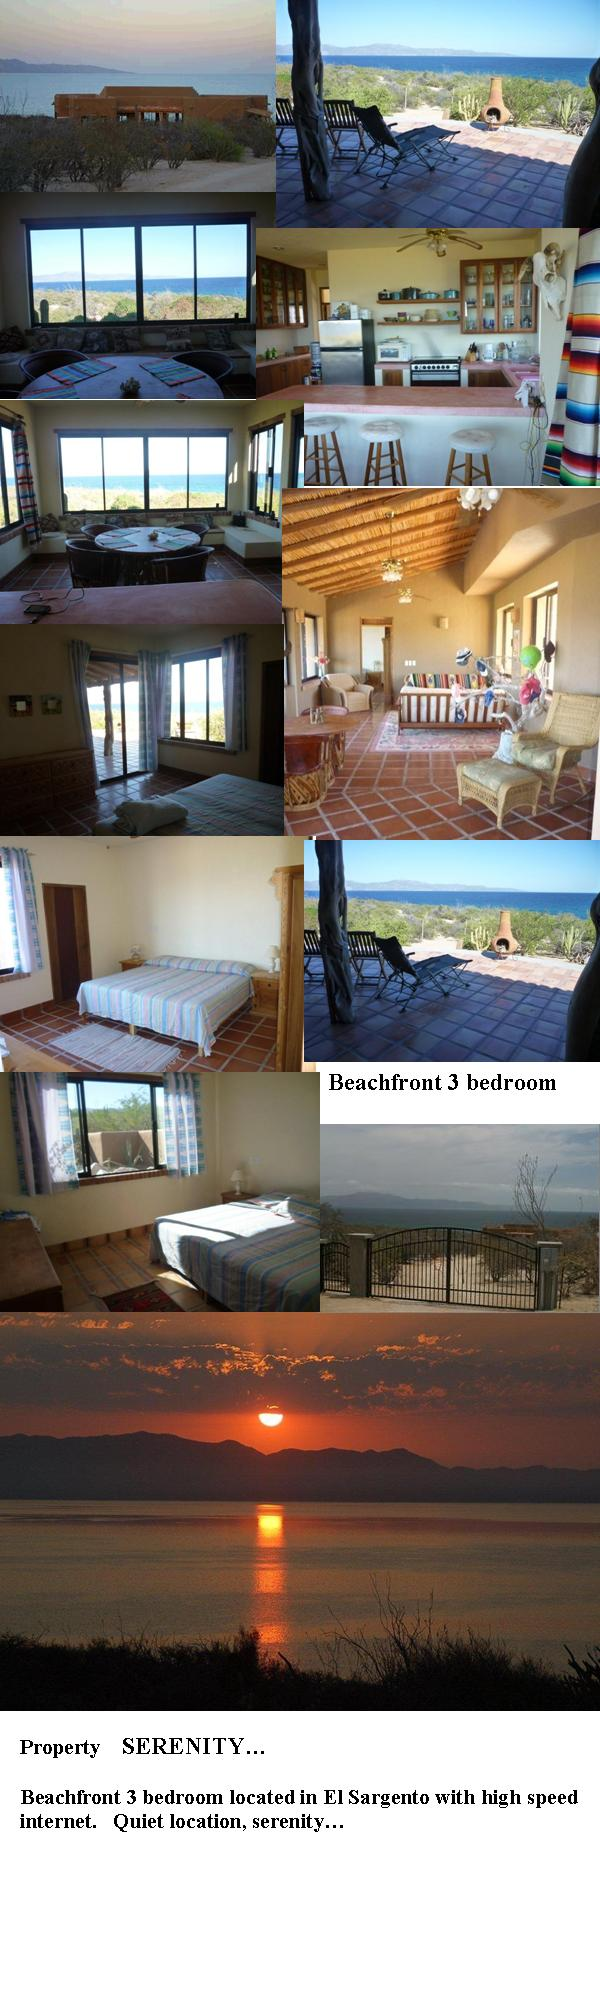 house home rentals B&B, rooms, trailers Sereni10